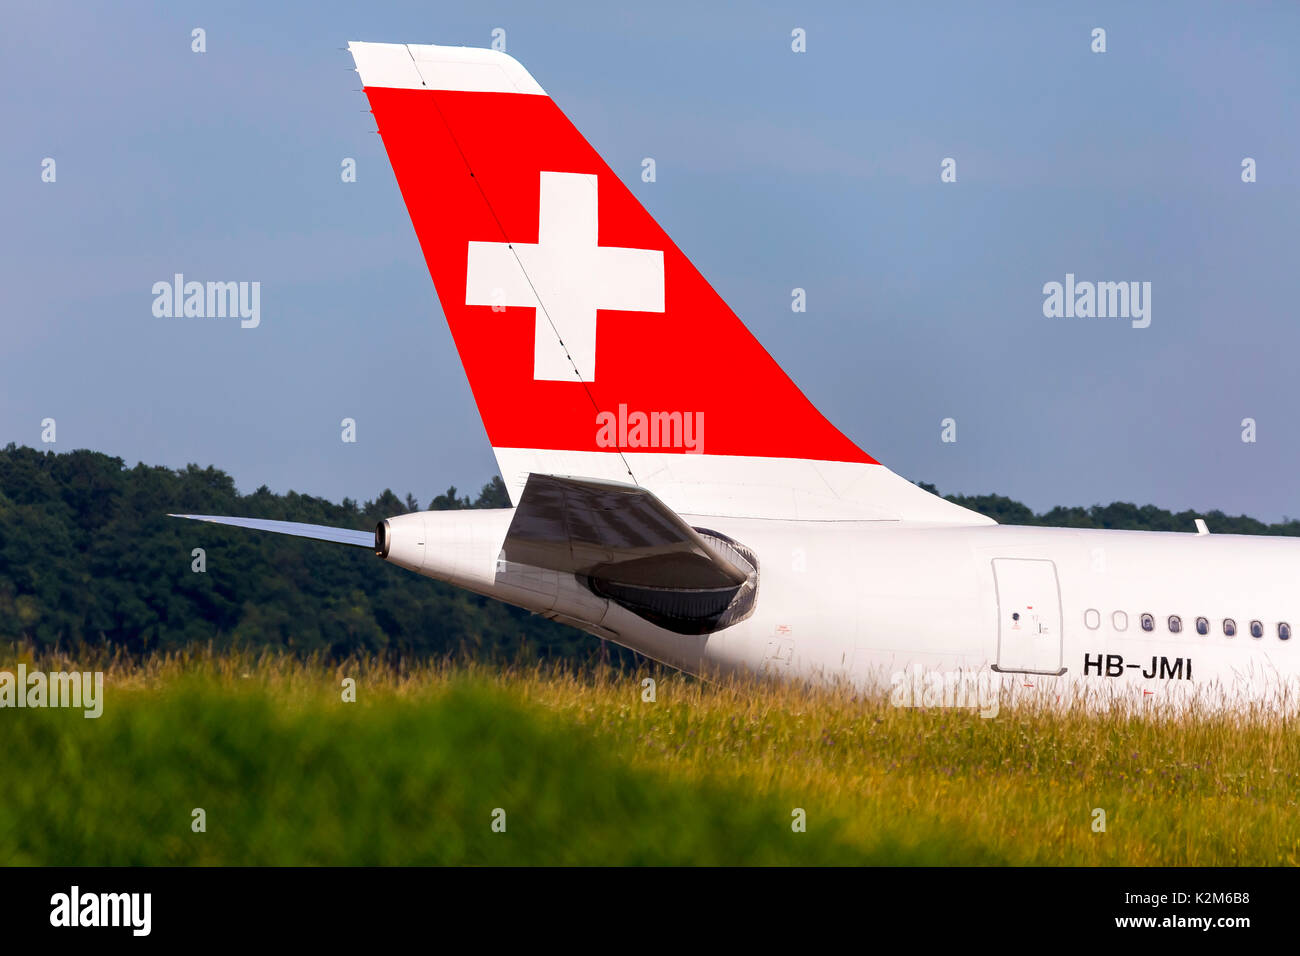 Zurich Airport, ZRH. Airplane Airbus A340, Swiss,  Aircraft registration HB-JMI. - Stock Image